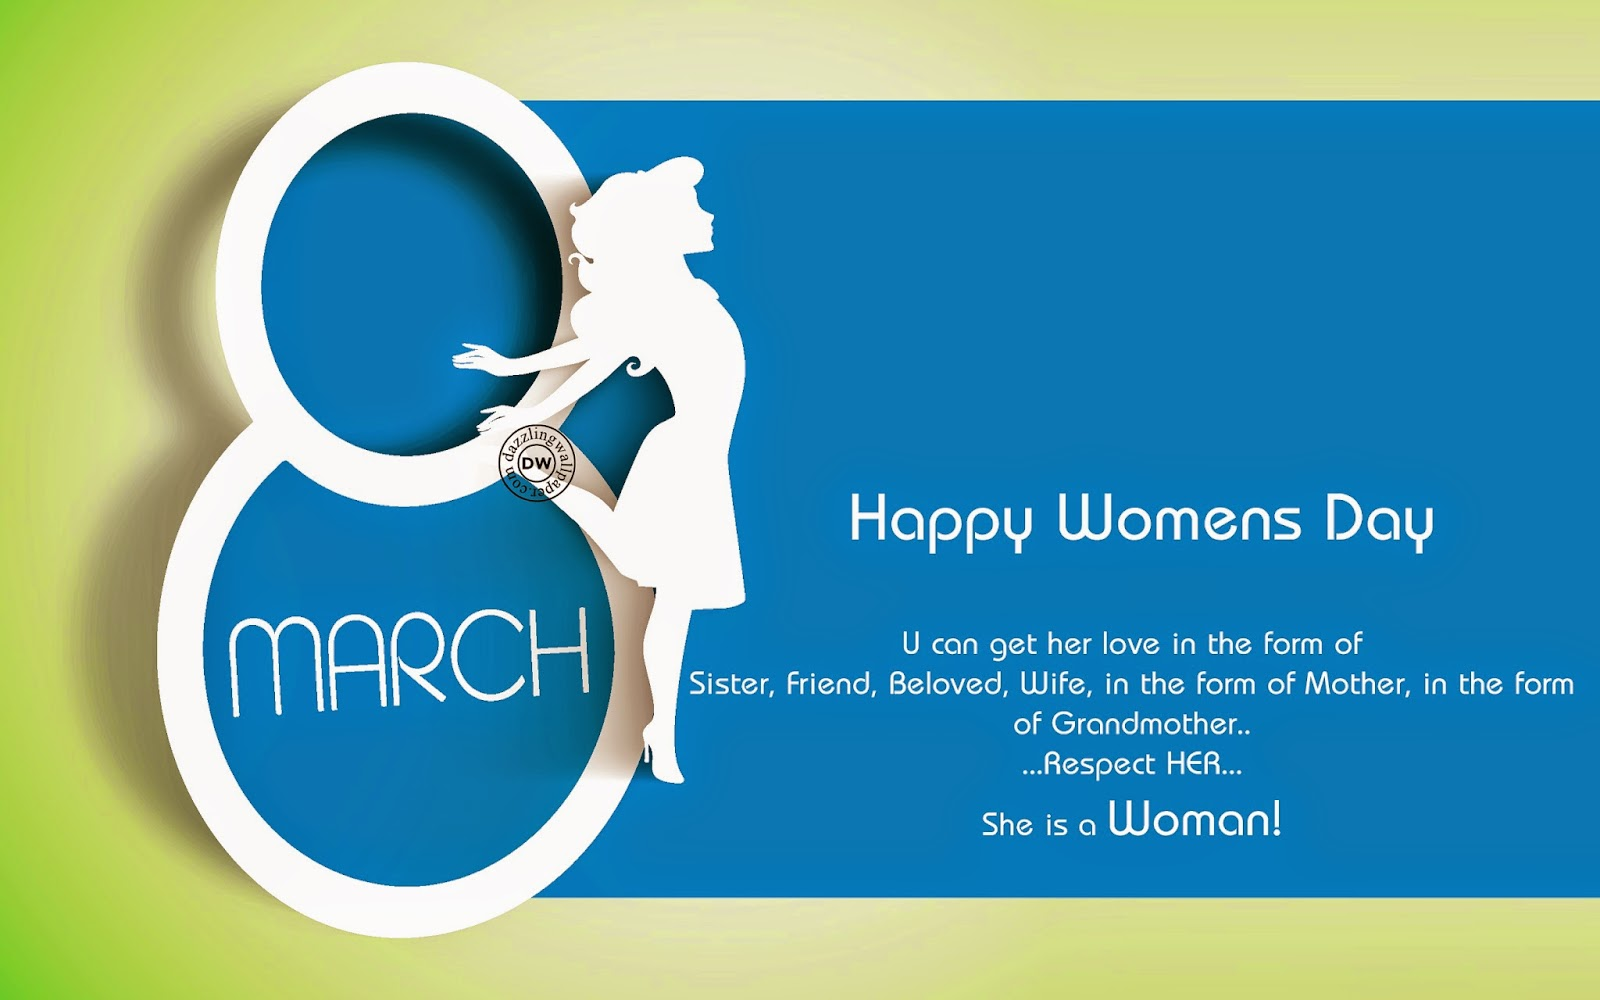 International Happy Women's Day SMS Wallpapers